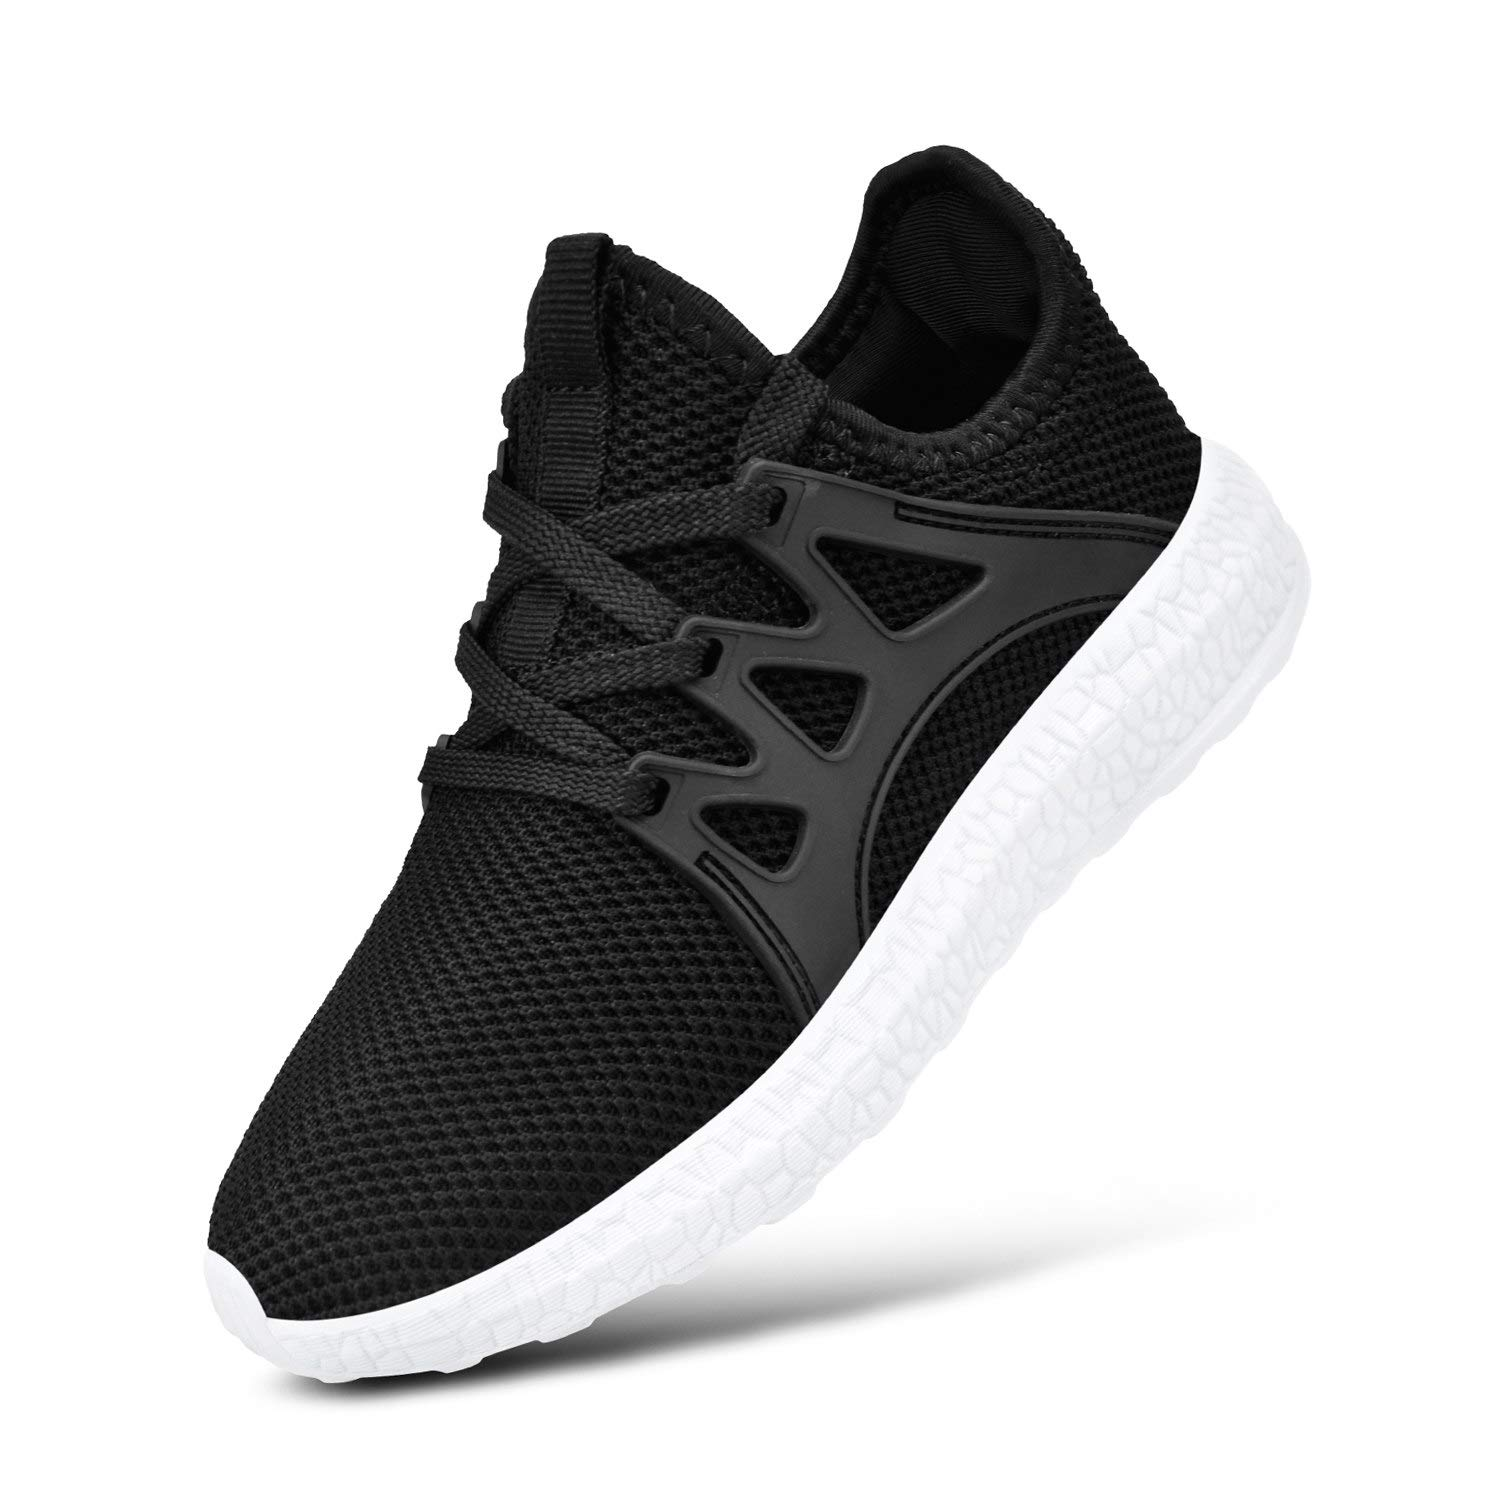 MARSVOVO Shoes for Girls Mesh Light Weight Breathable Runing Walking Sneakers for Boys&Girls Black White Size4 Big Kid by MARSVOVO (Image #1)